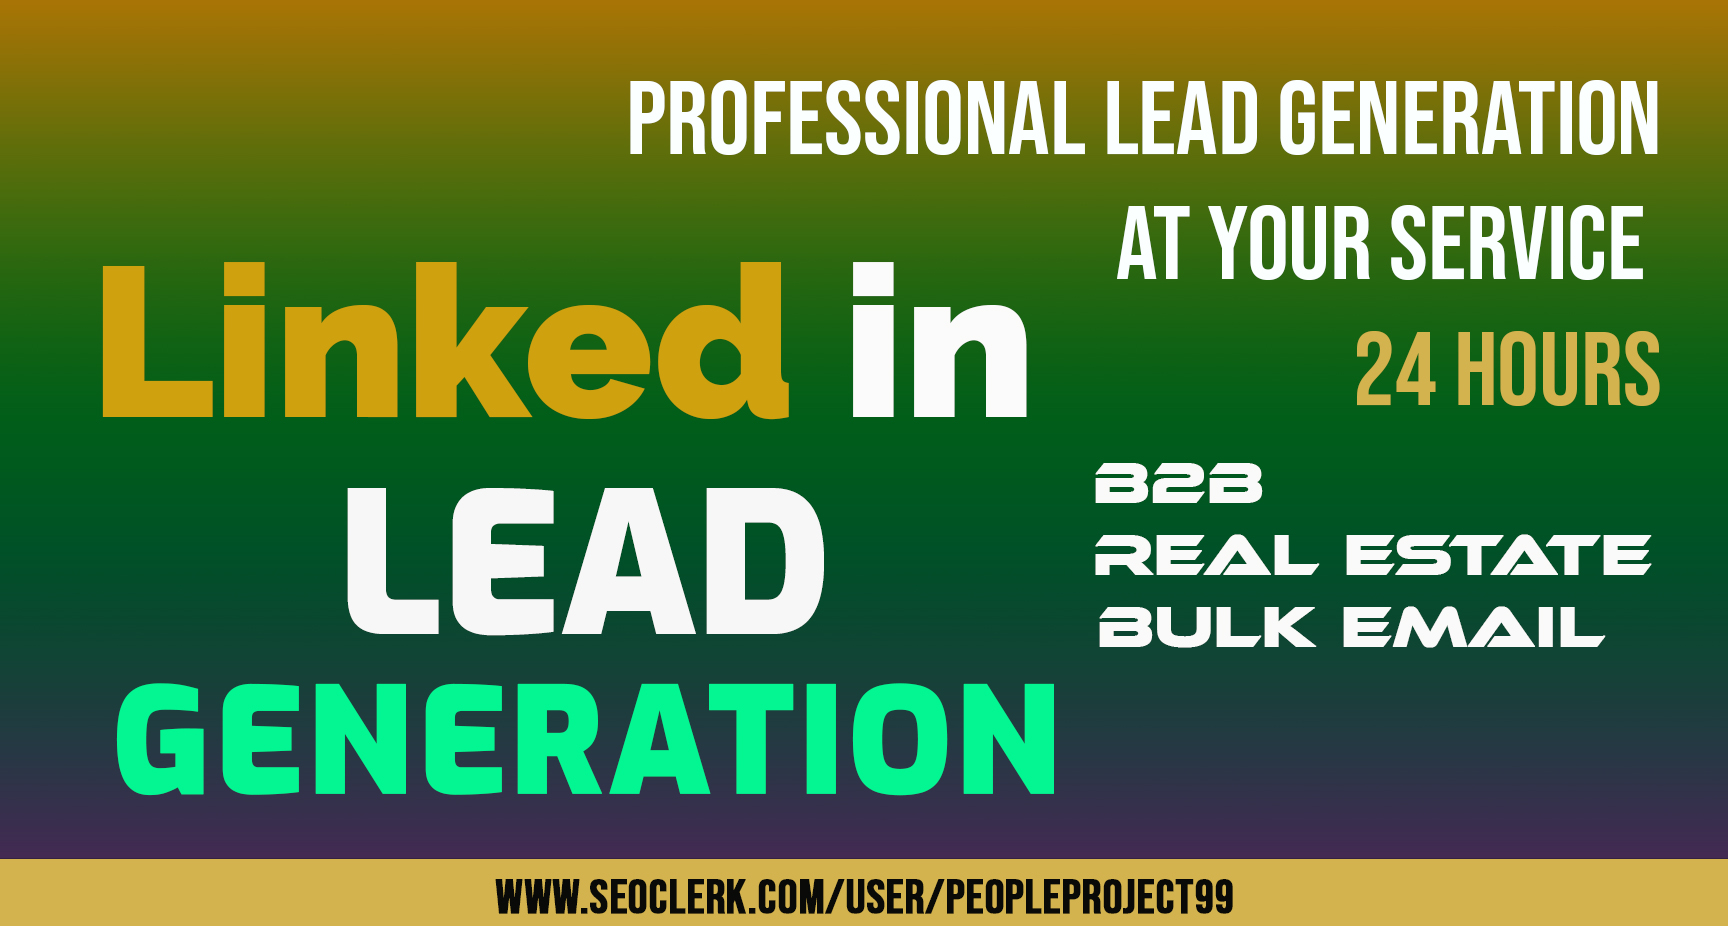 I will collect b2b,  real estate,  lead generation on LinkedIn within 24 Hours